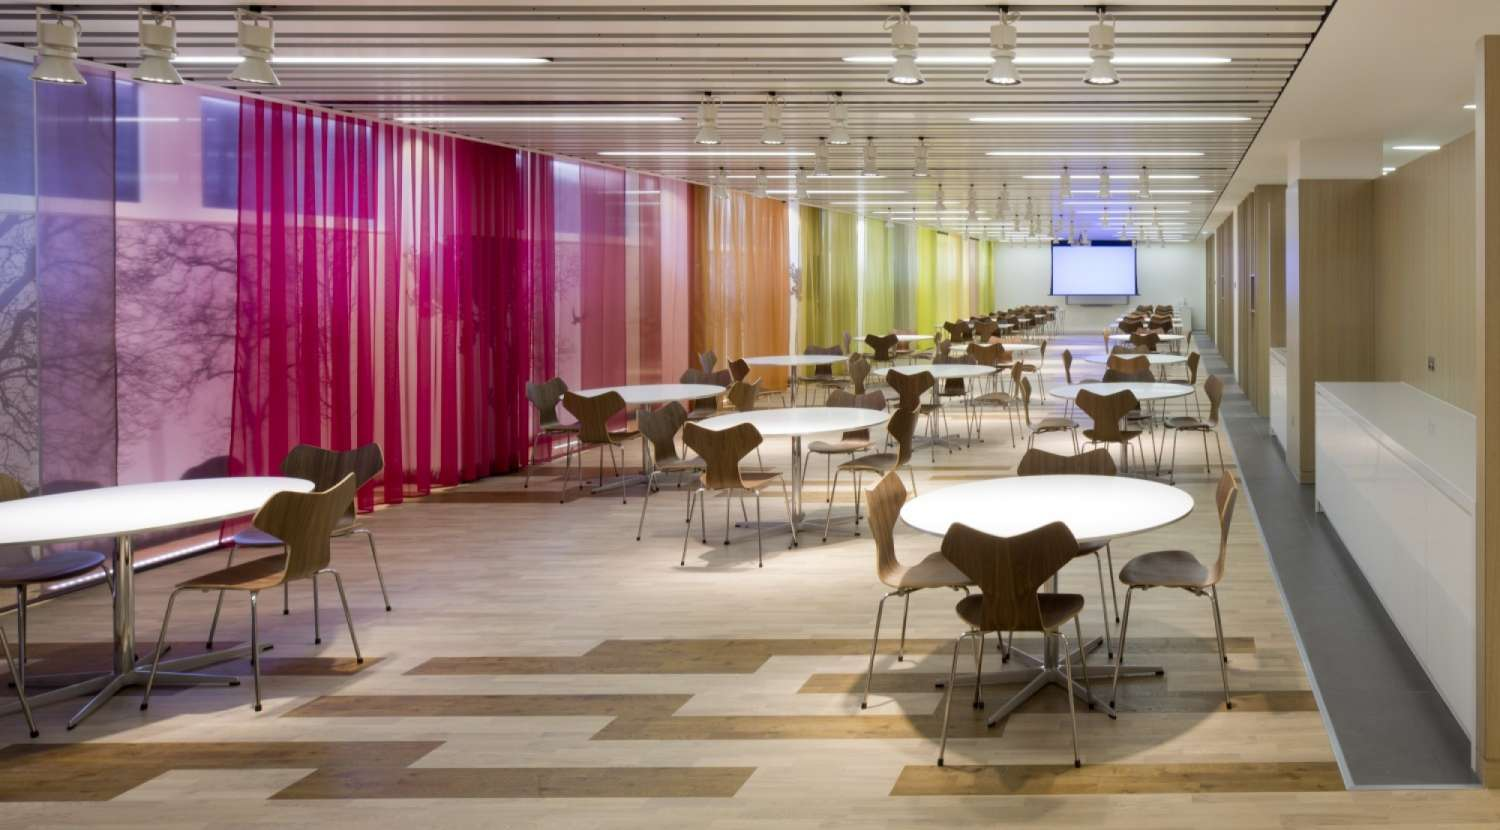 Colourful staff seating area with circular tables